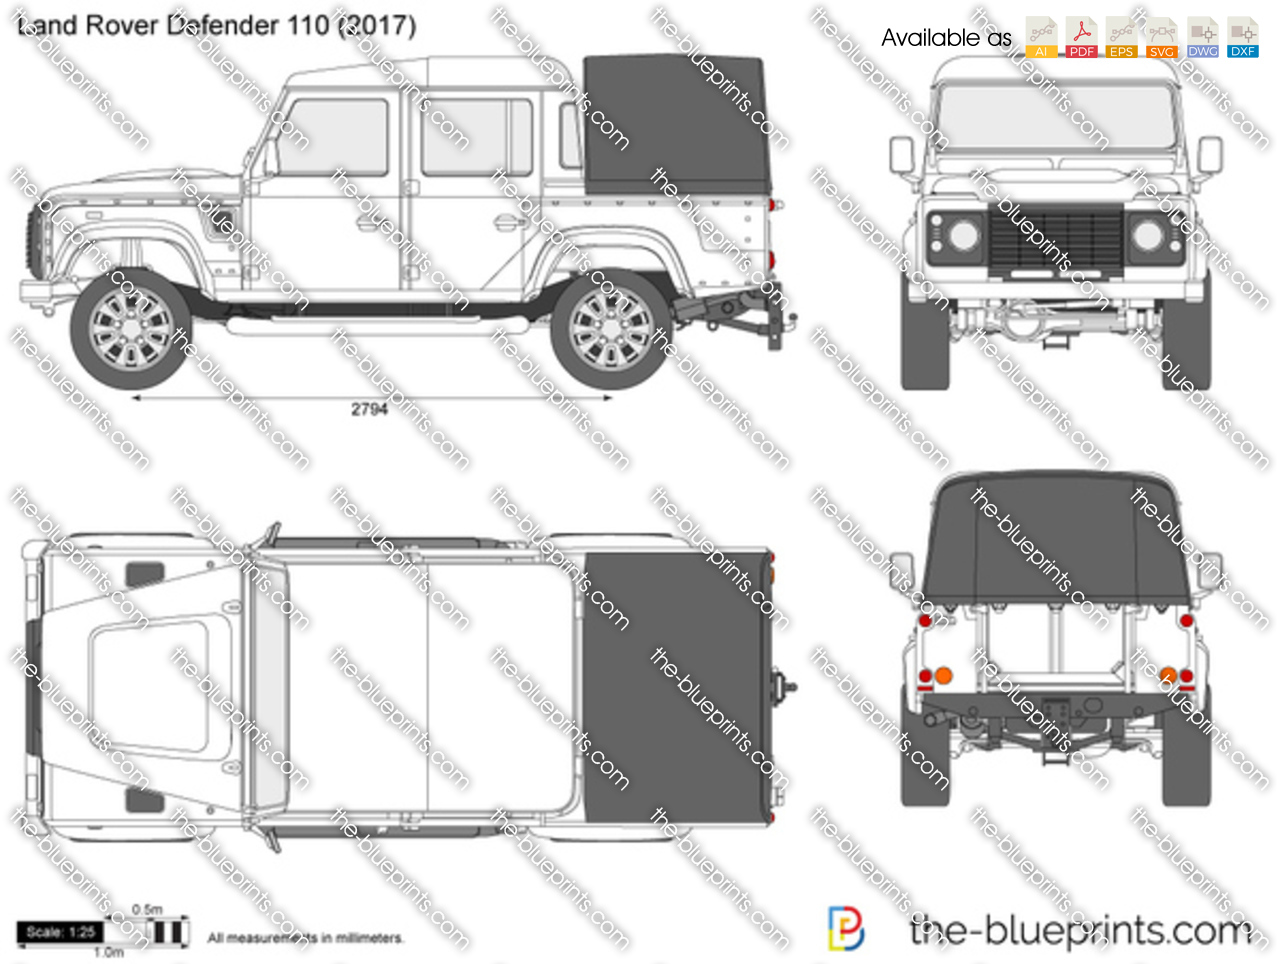 Land Rover Defender 110 2018